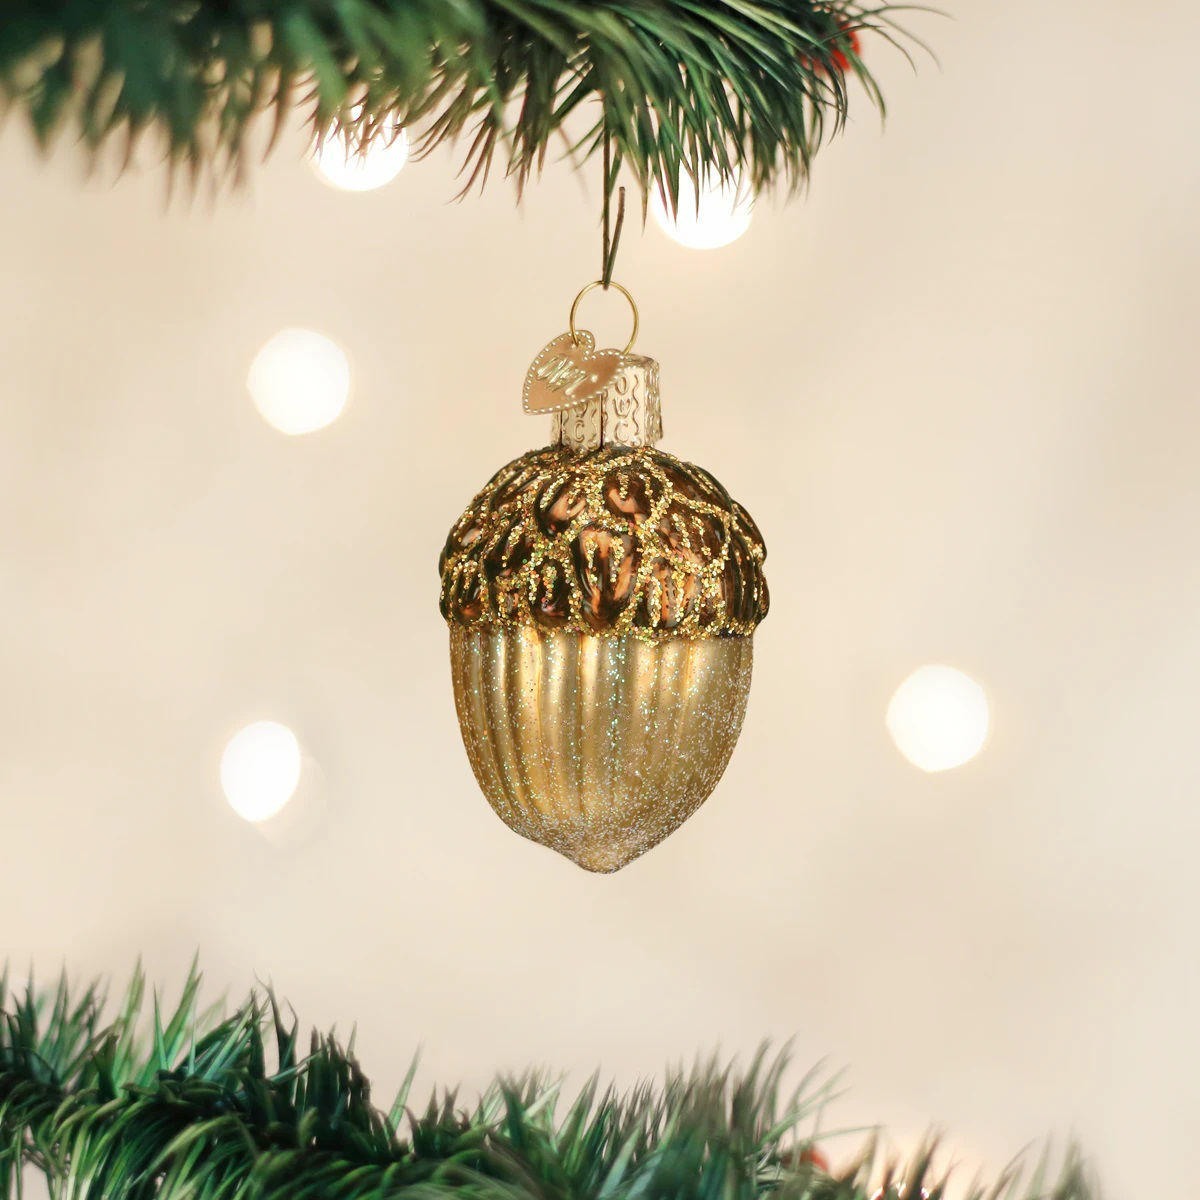 Acorn Ornament by Old World Christmas